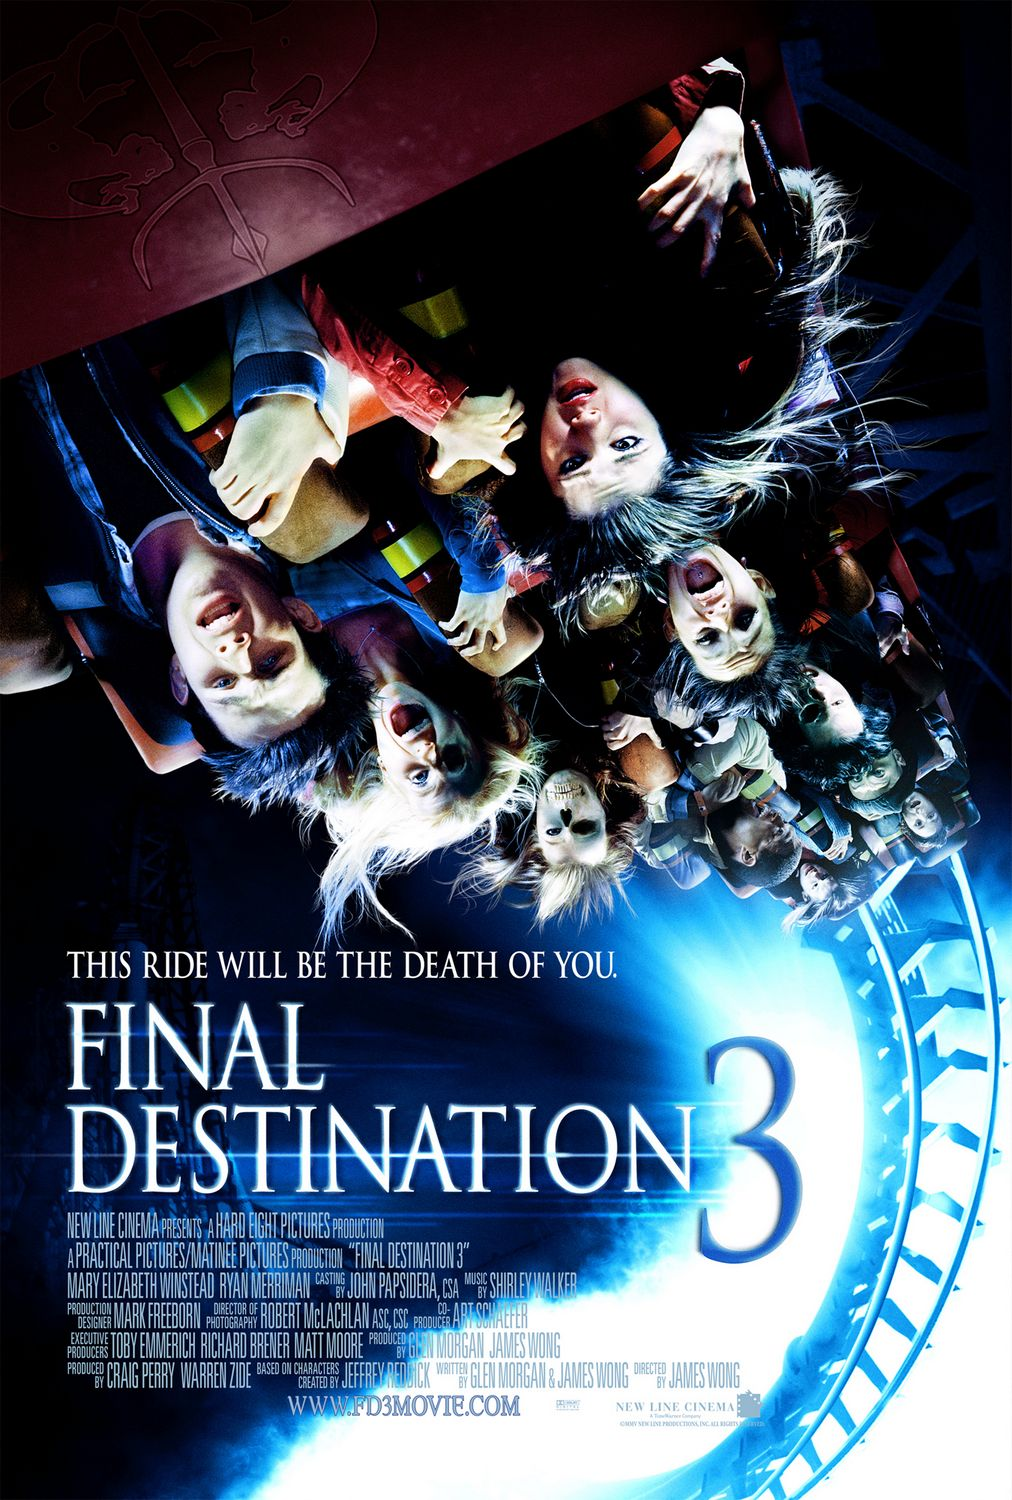 Lost in the 2000s final destination 3